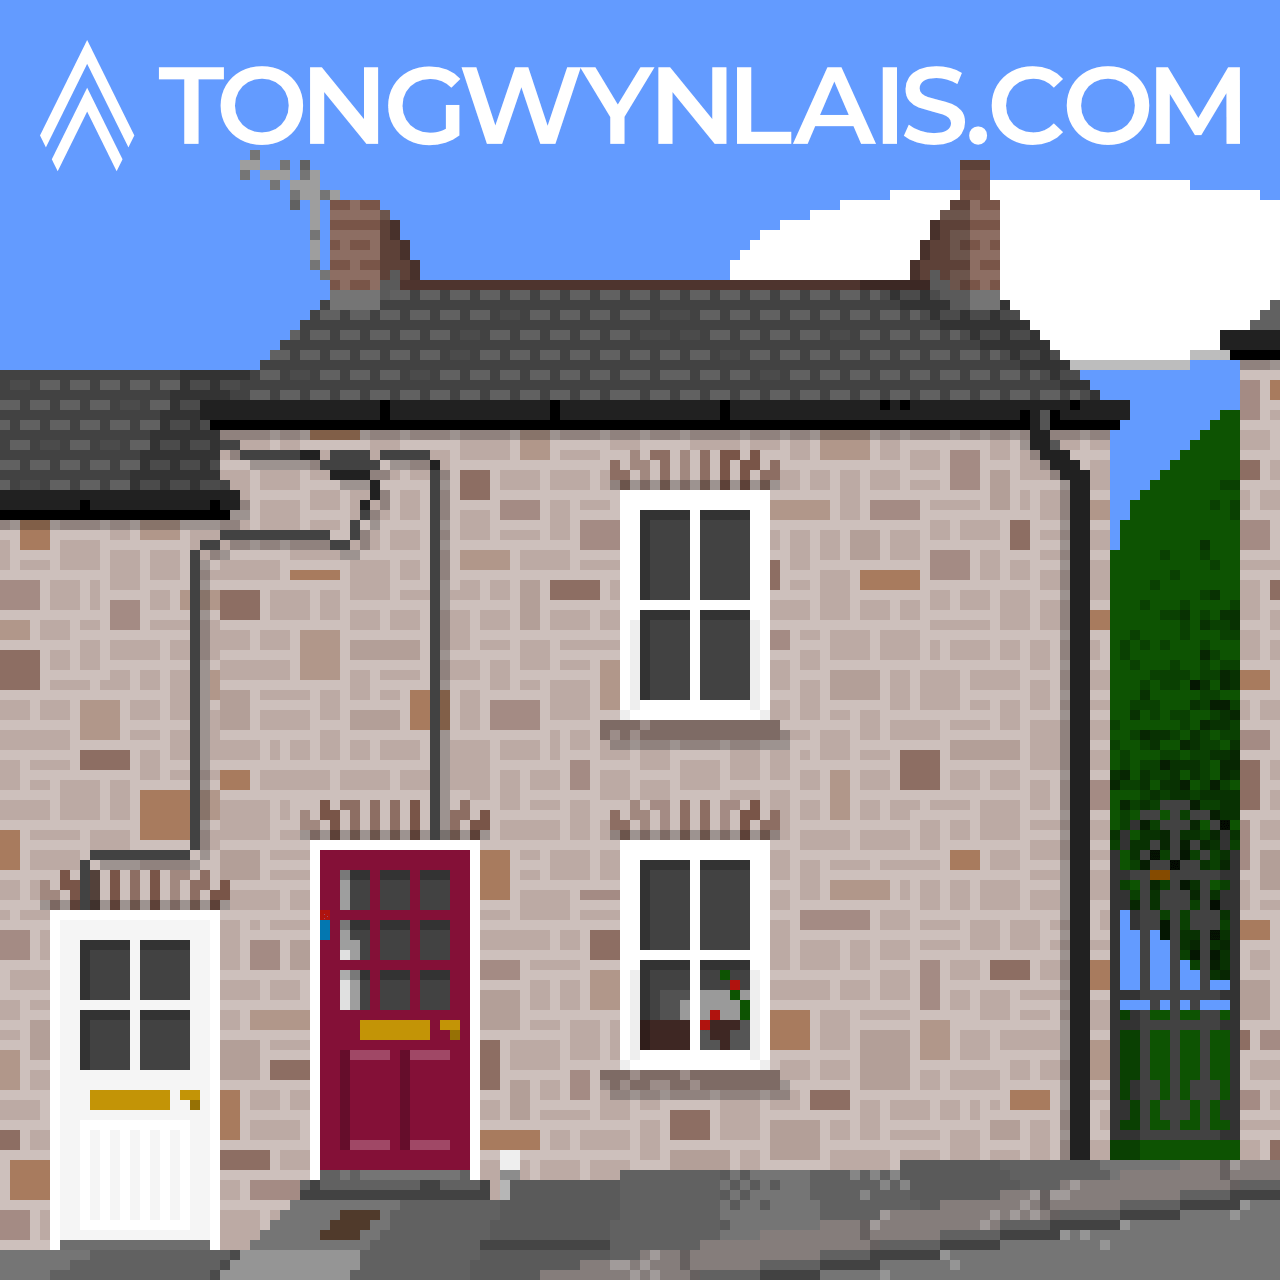 Pixel art illustration of a cottage